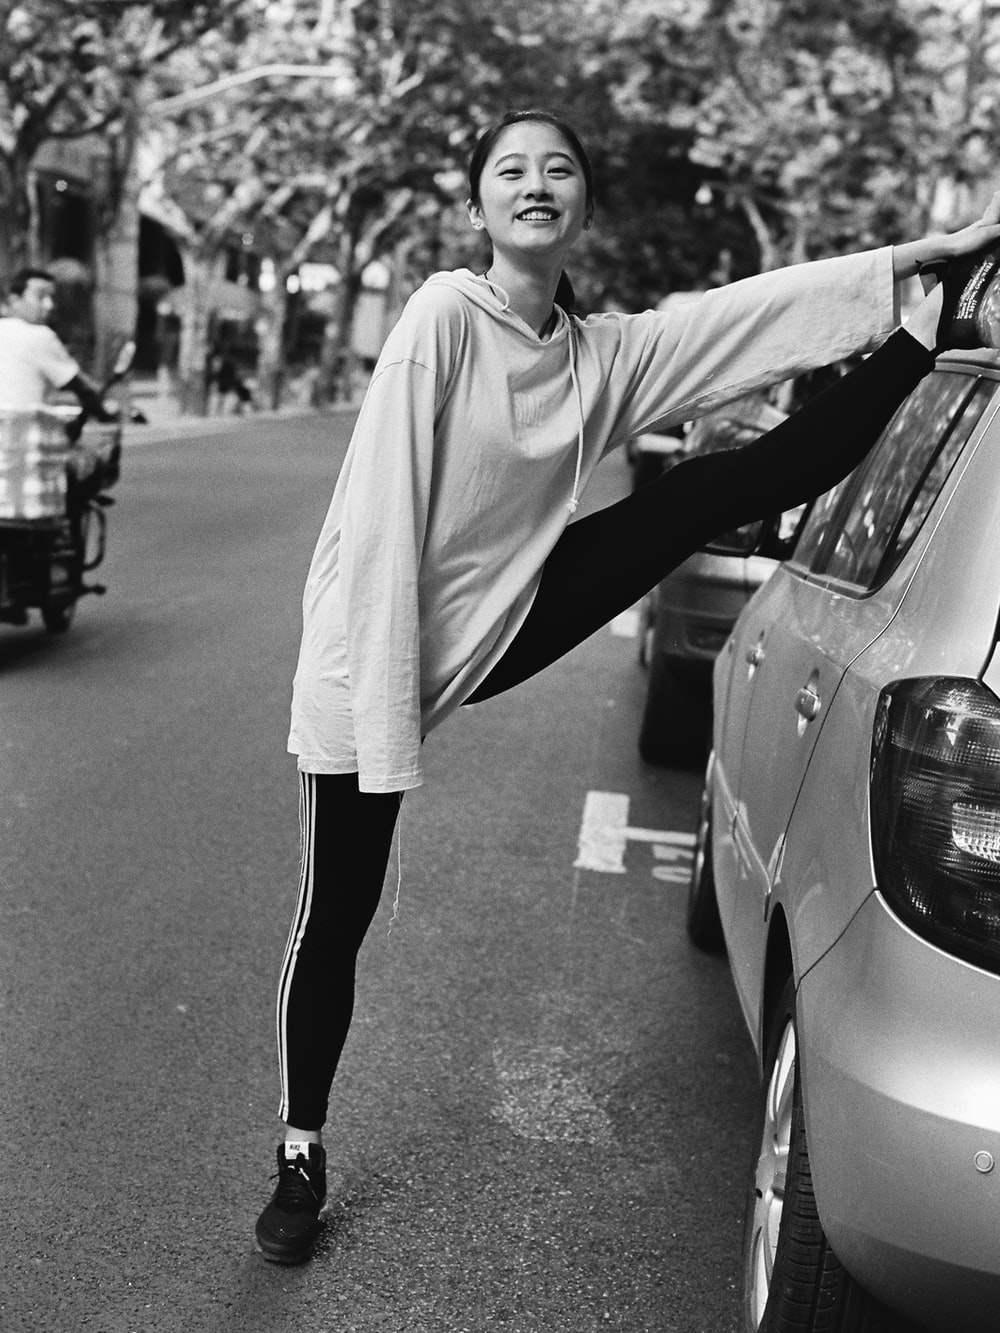 grayscale photo of woman in long sleeve shirt and black pants standing on road